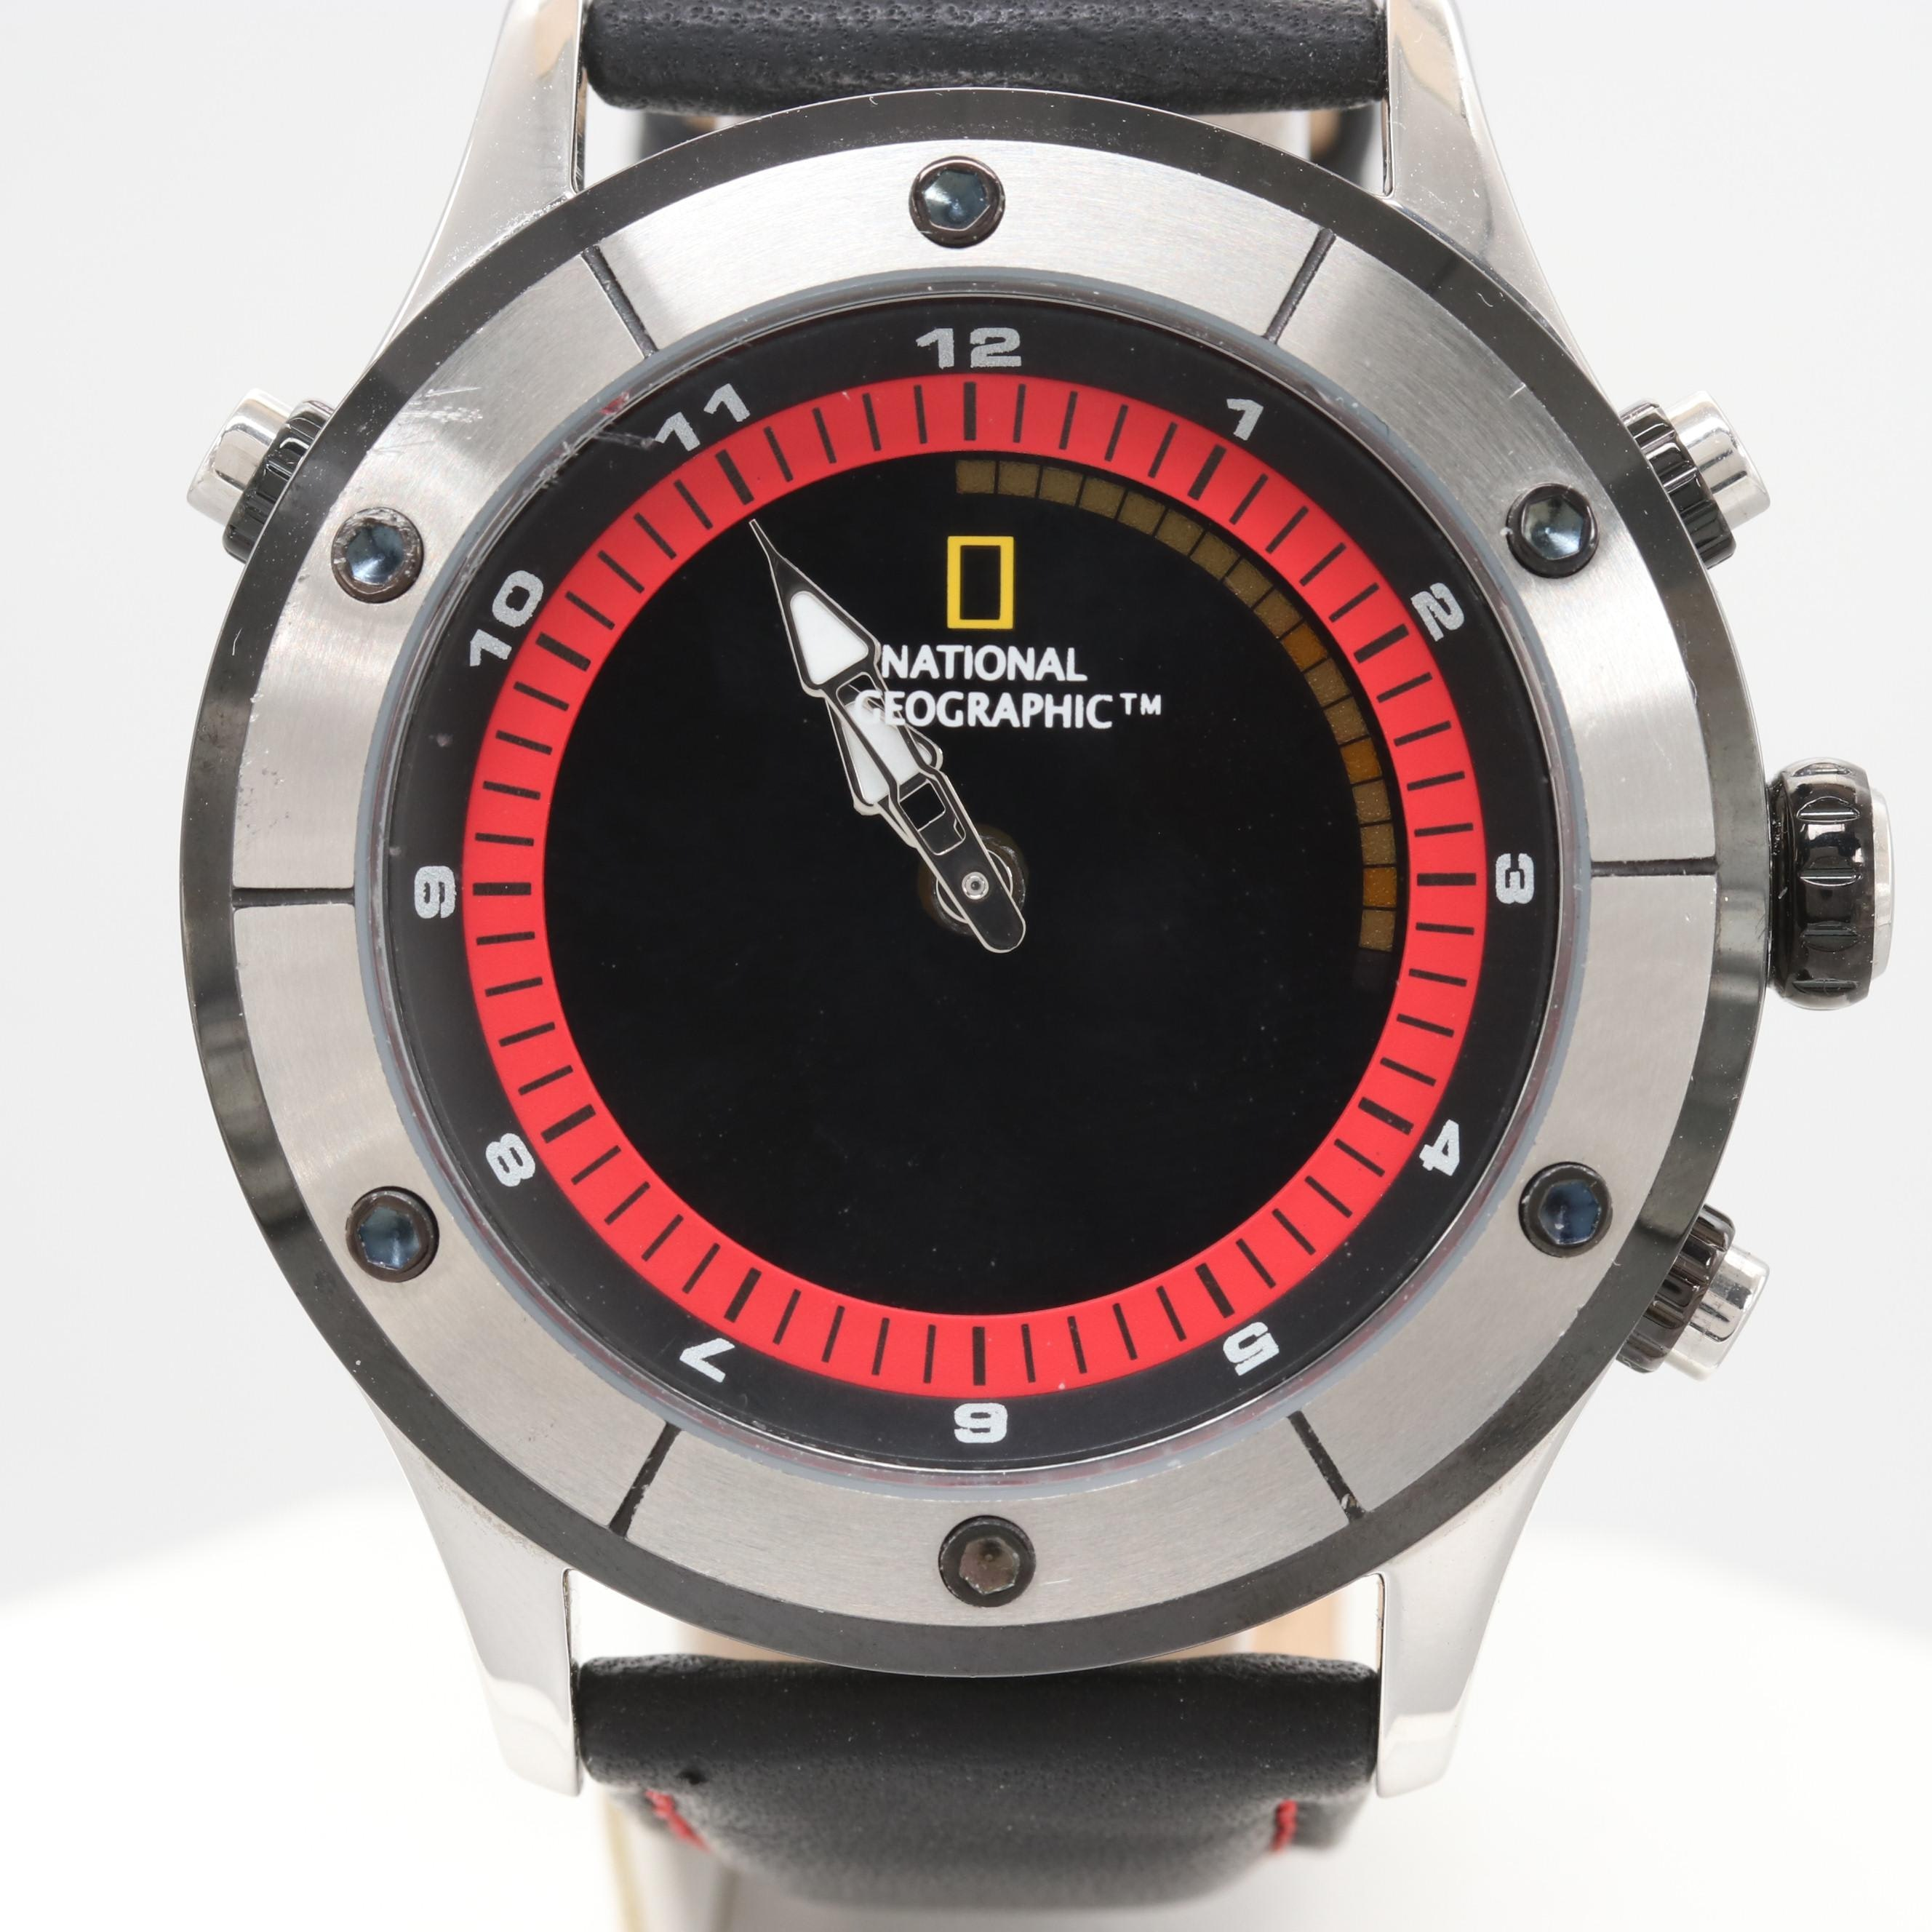 National Geographic Stainless Steel Digital and Analog Wristwatch